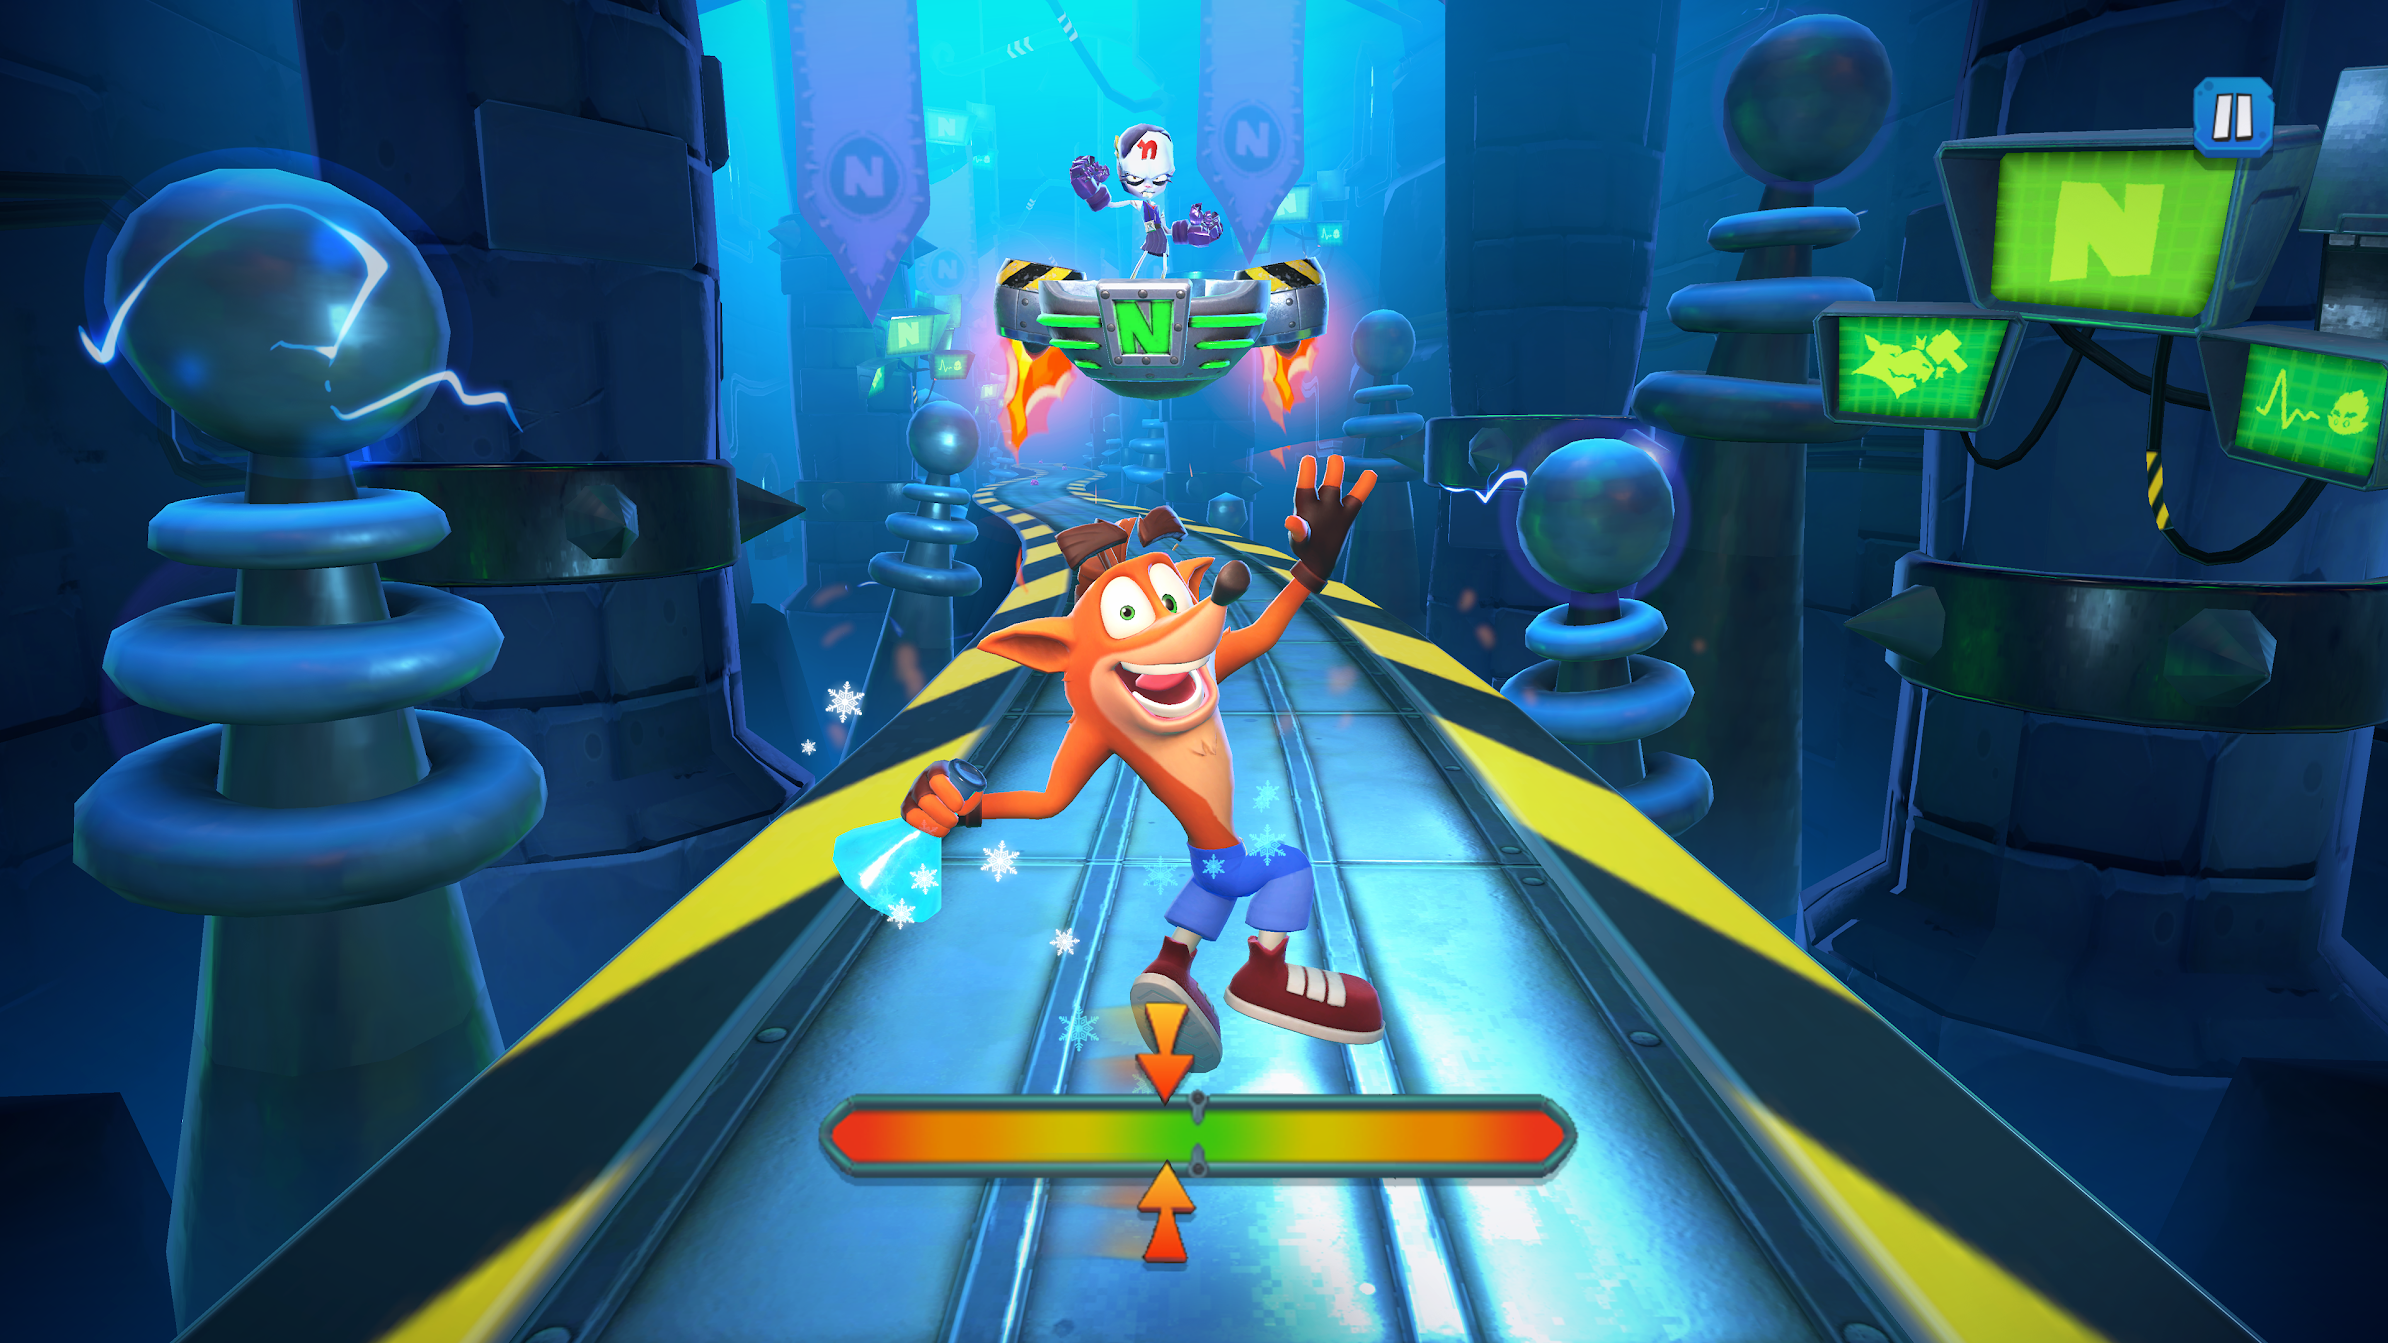 'Crash Bandicoot: On the Run' Season 2: Running Outta Time Begins on iOS and Android with New Rewards, Bosses, Time-Themed Skins, Seasonal Gangs, and More